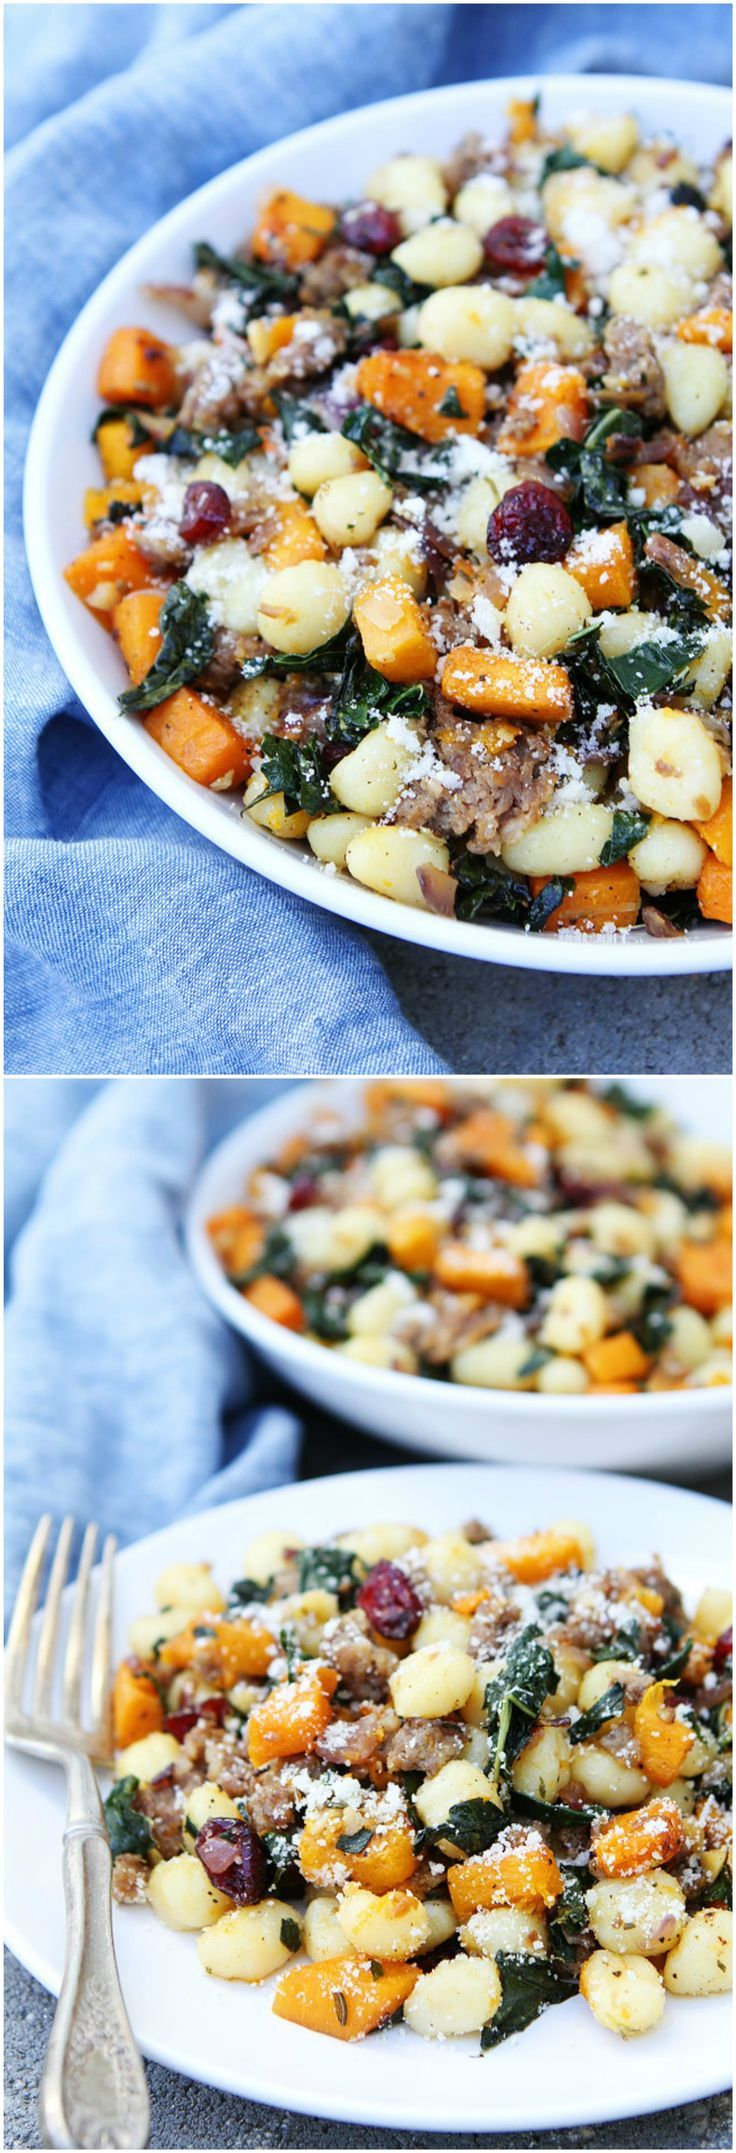 Butternut Squash, Sausage, and Kale Gnocchi Recipe on twopeasandtheirpod.com This quick and easy gnocchi dish makes a great fall meal.